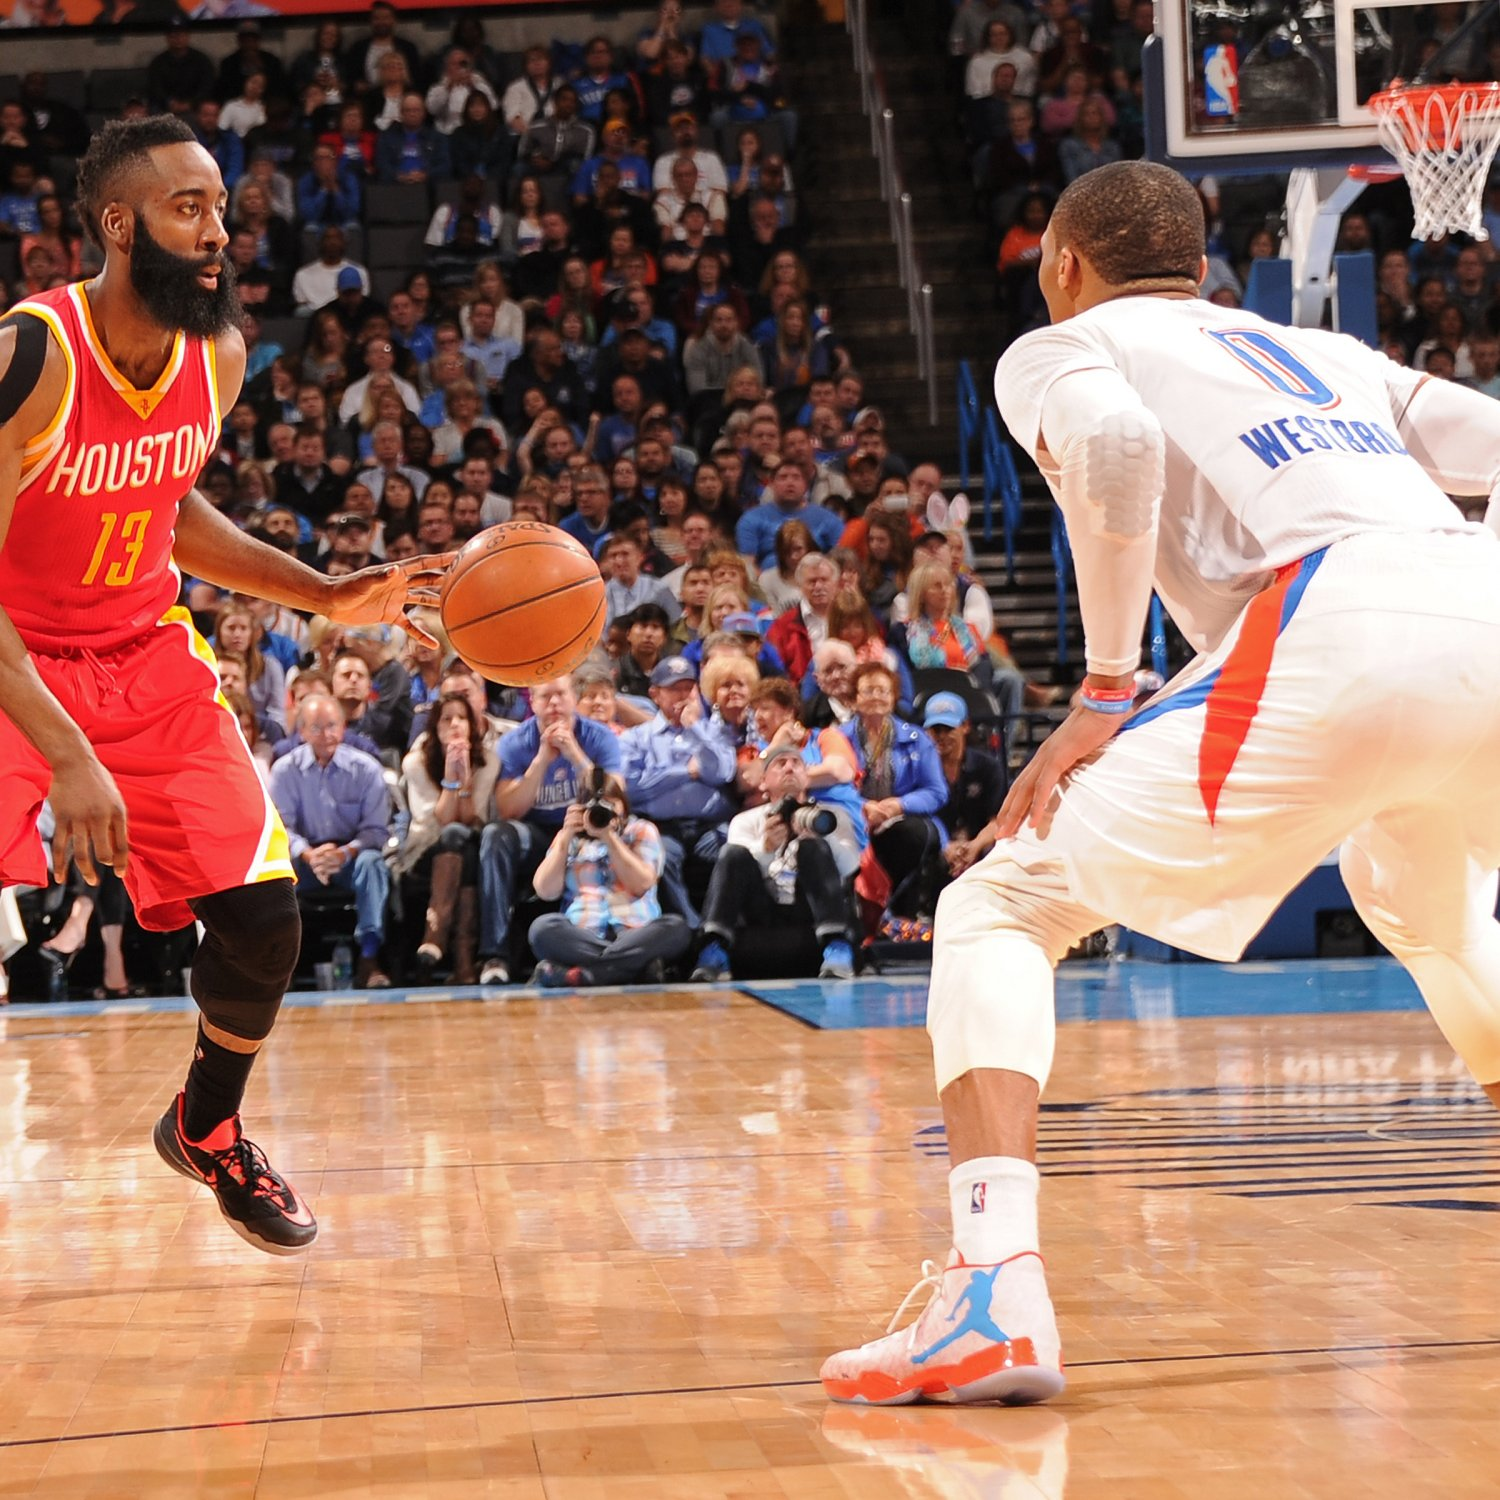 James Harden In Okc: Did OKC Thunder Make The Right Choice On Trading James